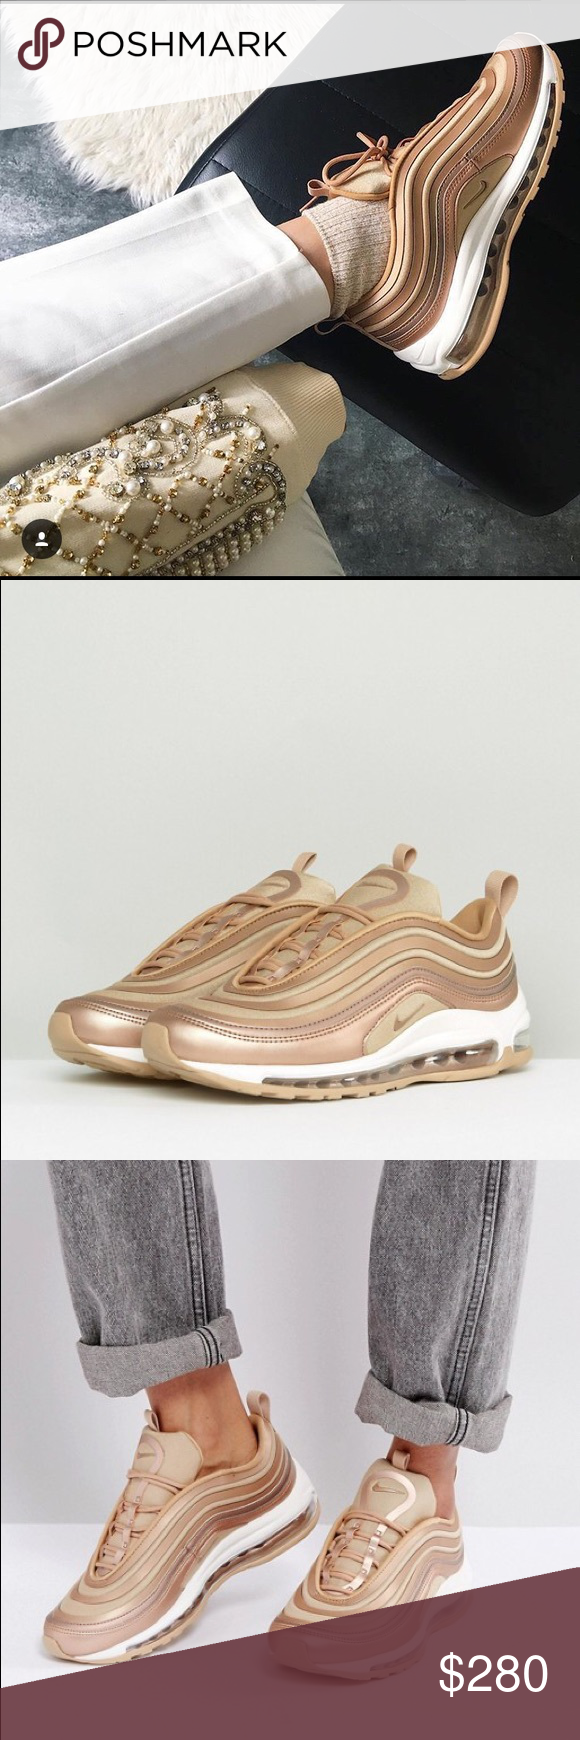 new concept 8cf68 4aae1 nike air max 97 metallic cashmere nz|Free delivery!